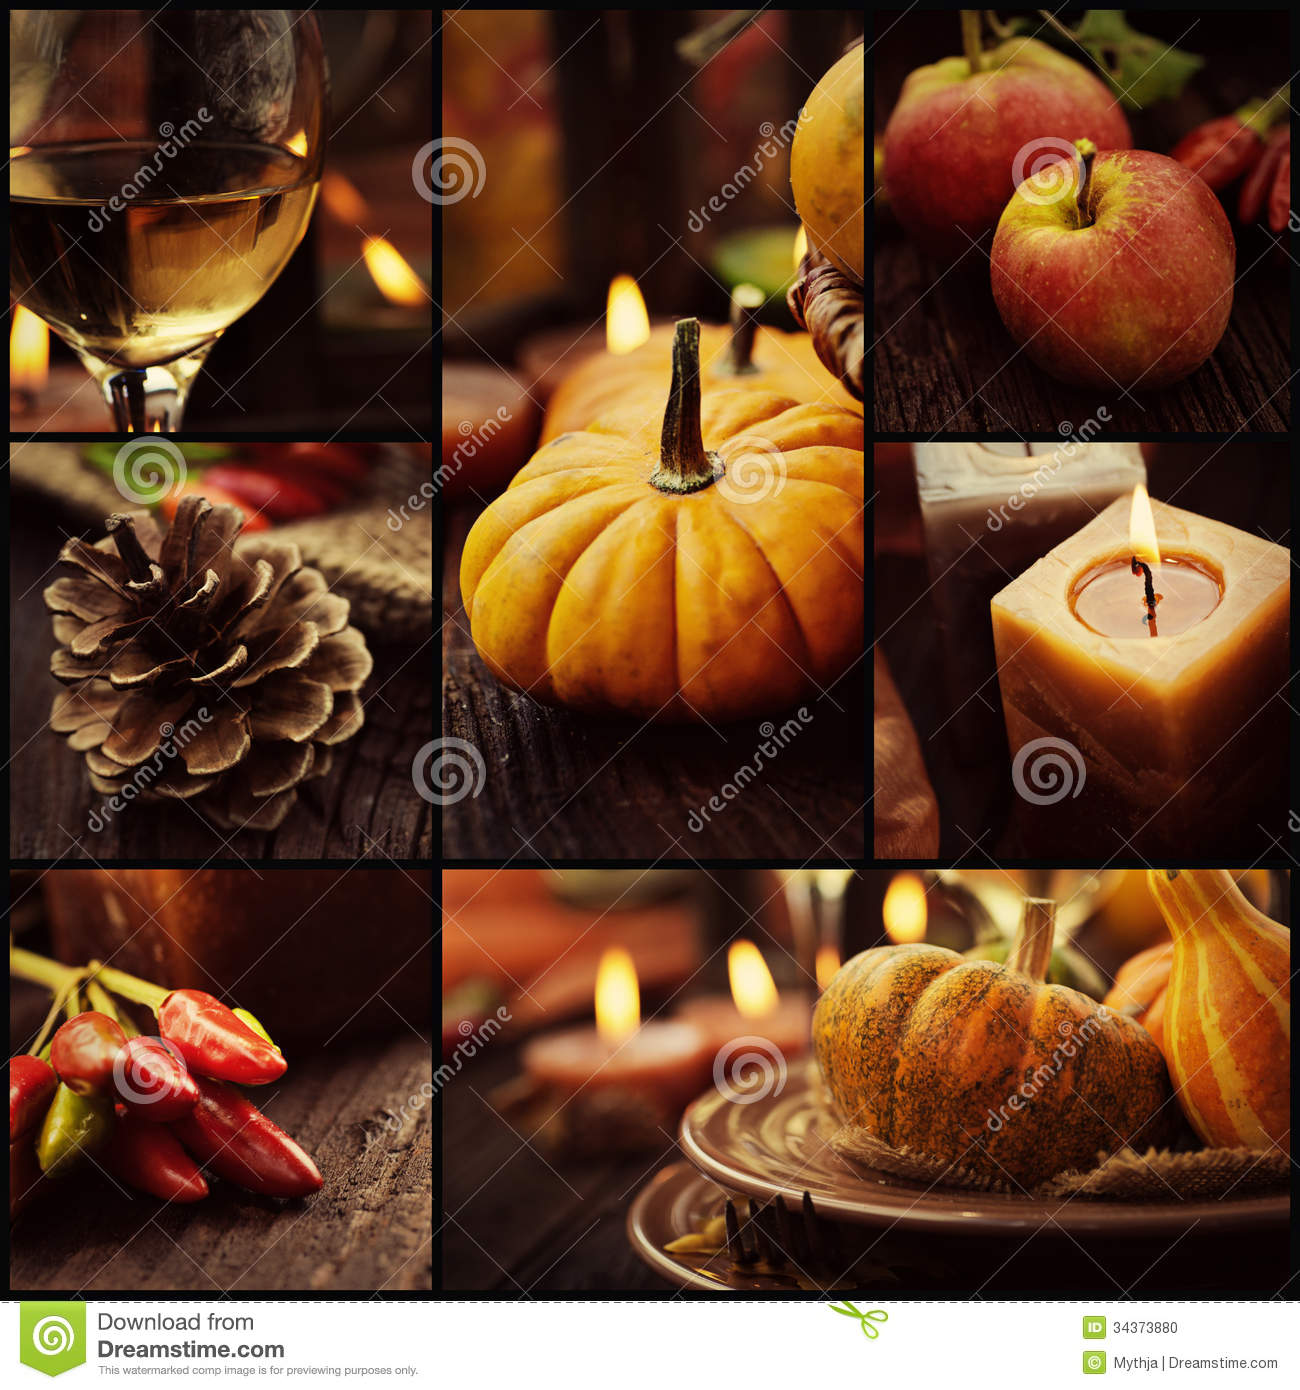 Autumn dinner collage stock photo image 34373880